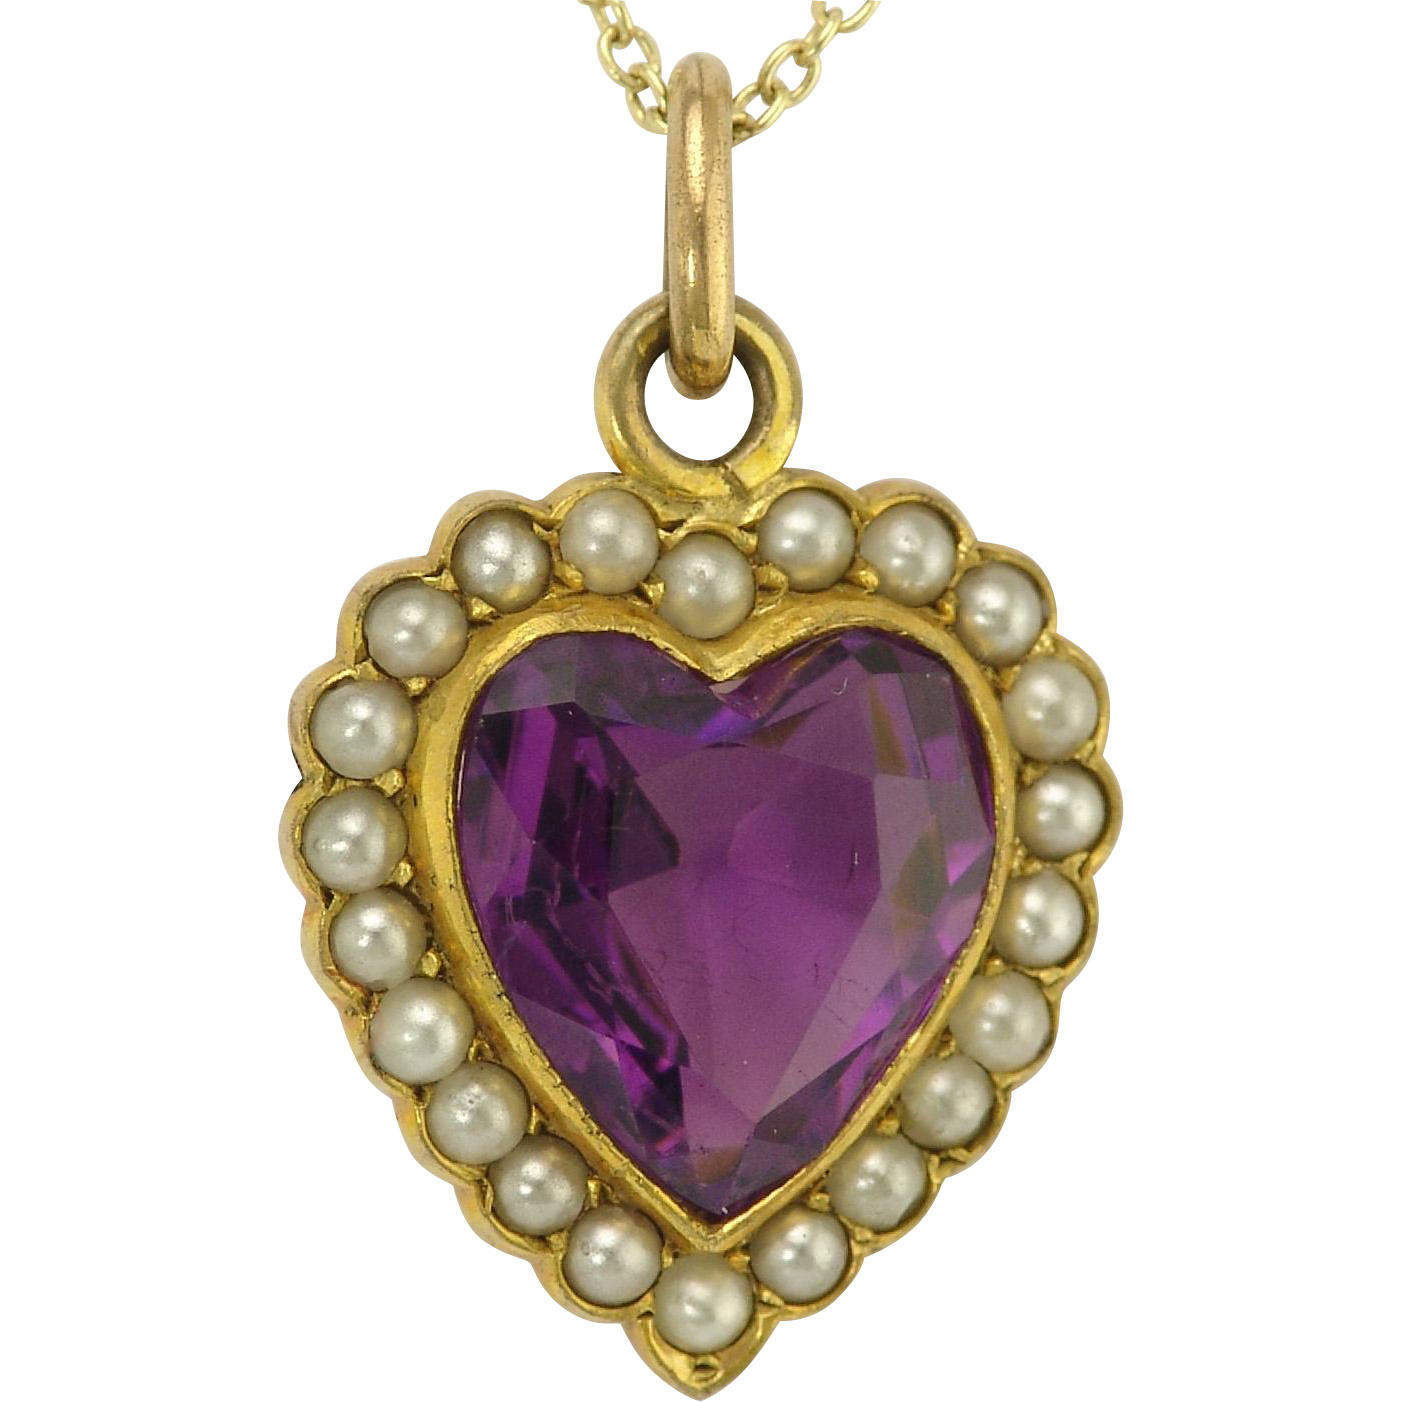 Romantic Antique Amethyst Pearl 14k Gold Heart Pendant